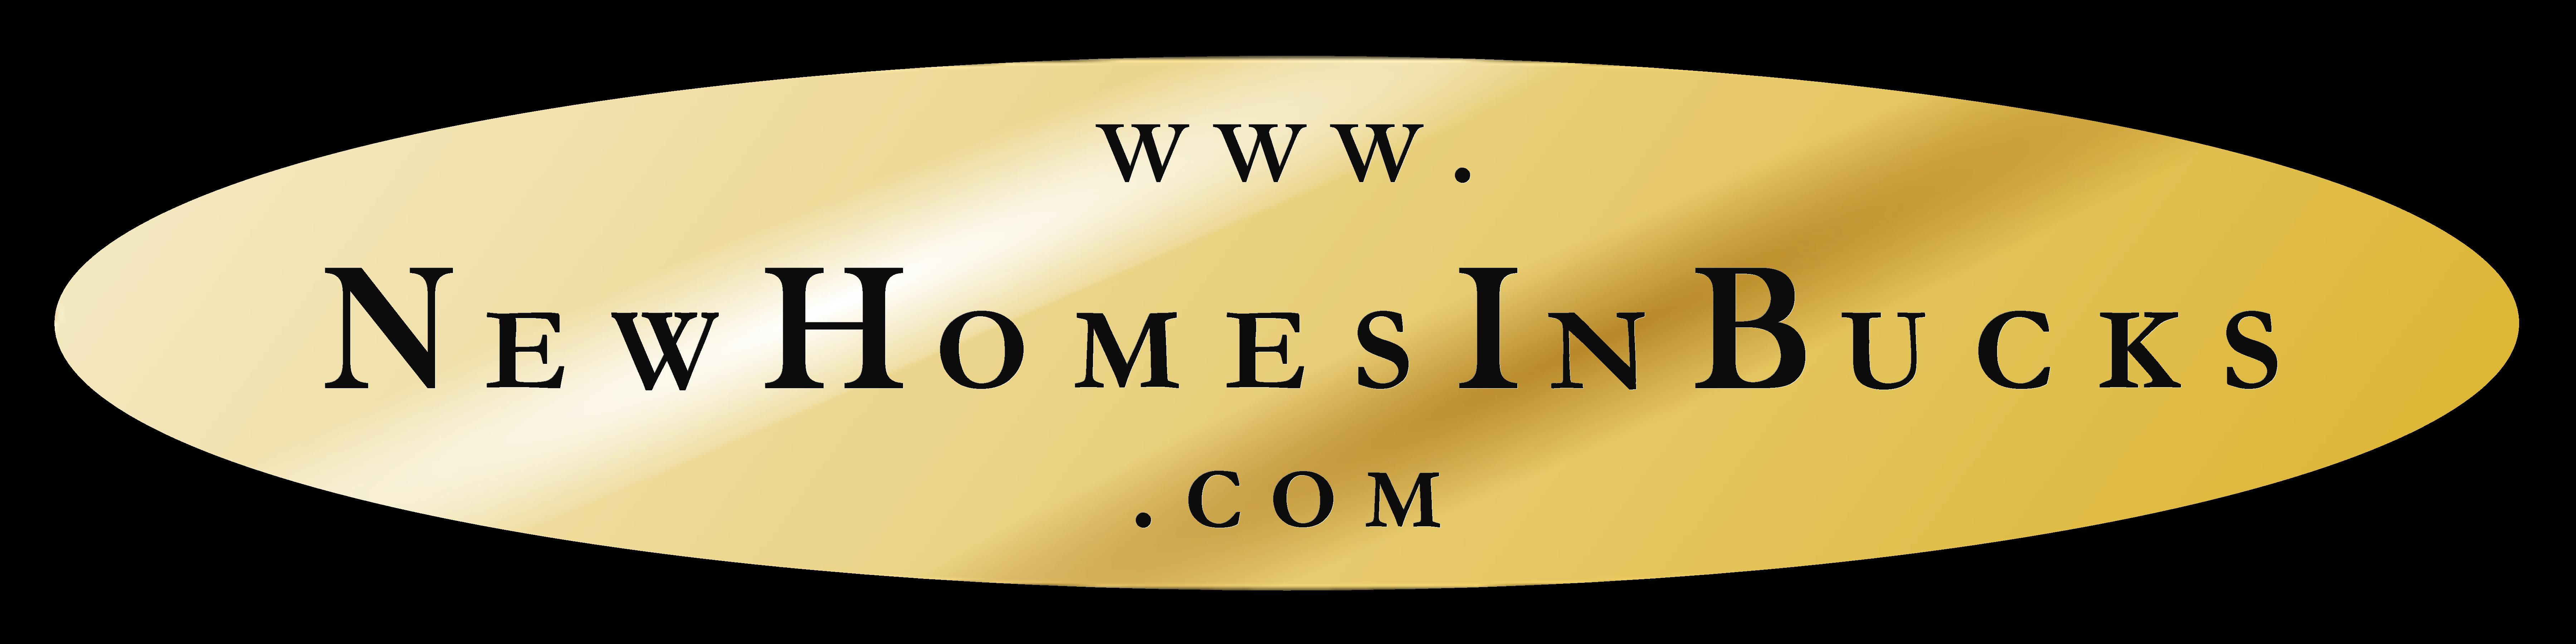 New Homes In Bucks | New Construction Bucks County | New Homes for Sale in Bucks County PA | WEIDEL Real Estate